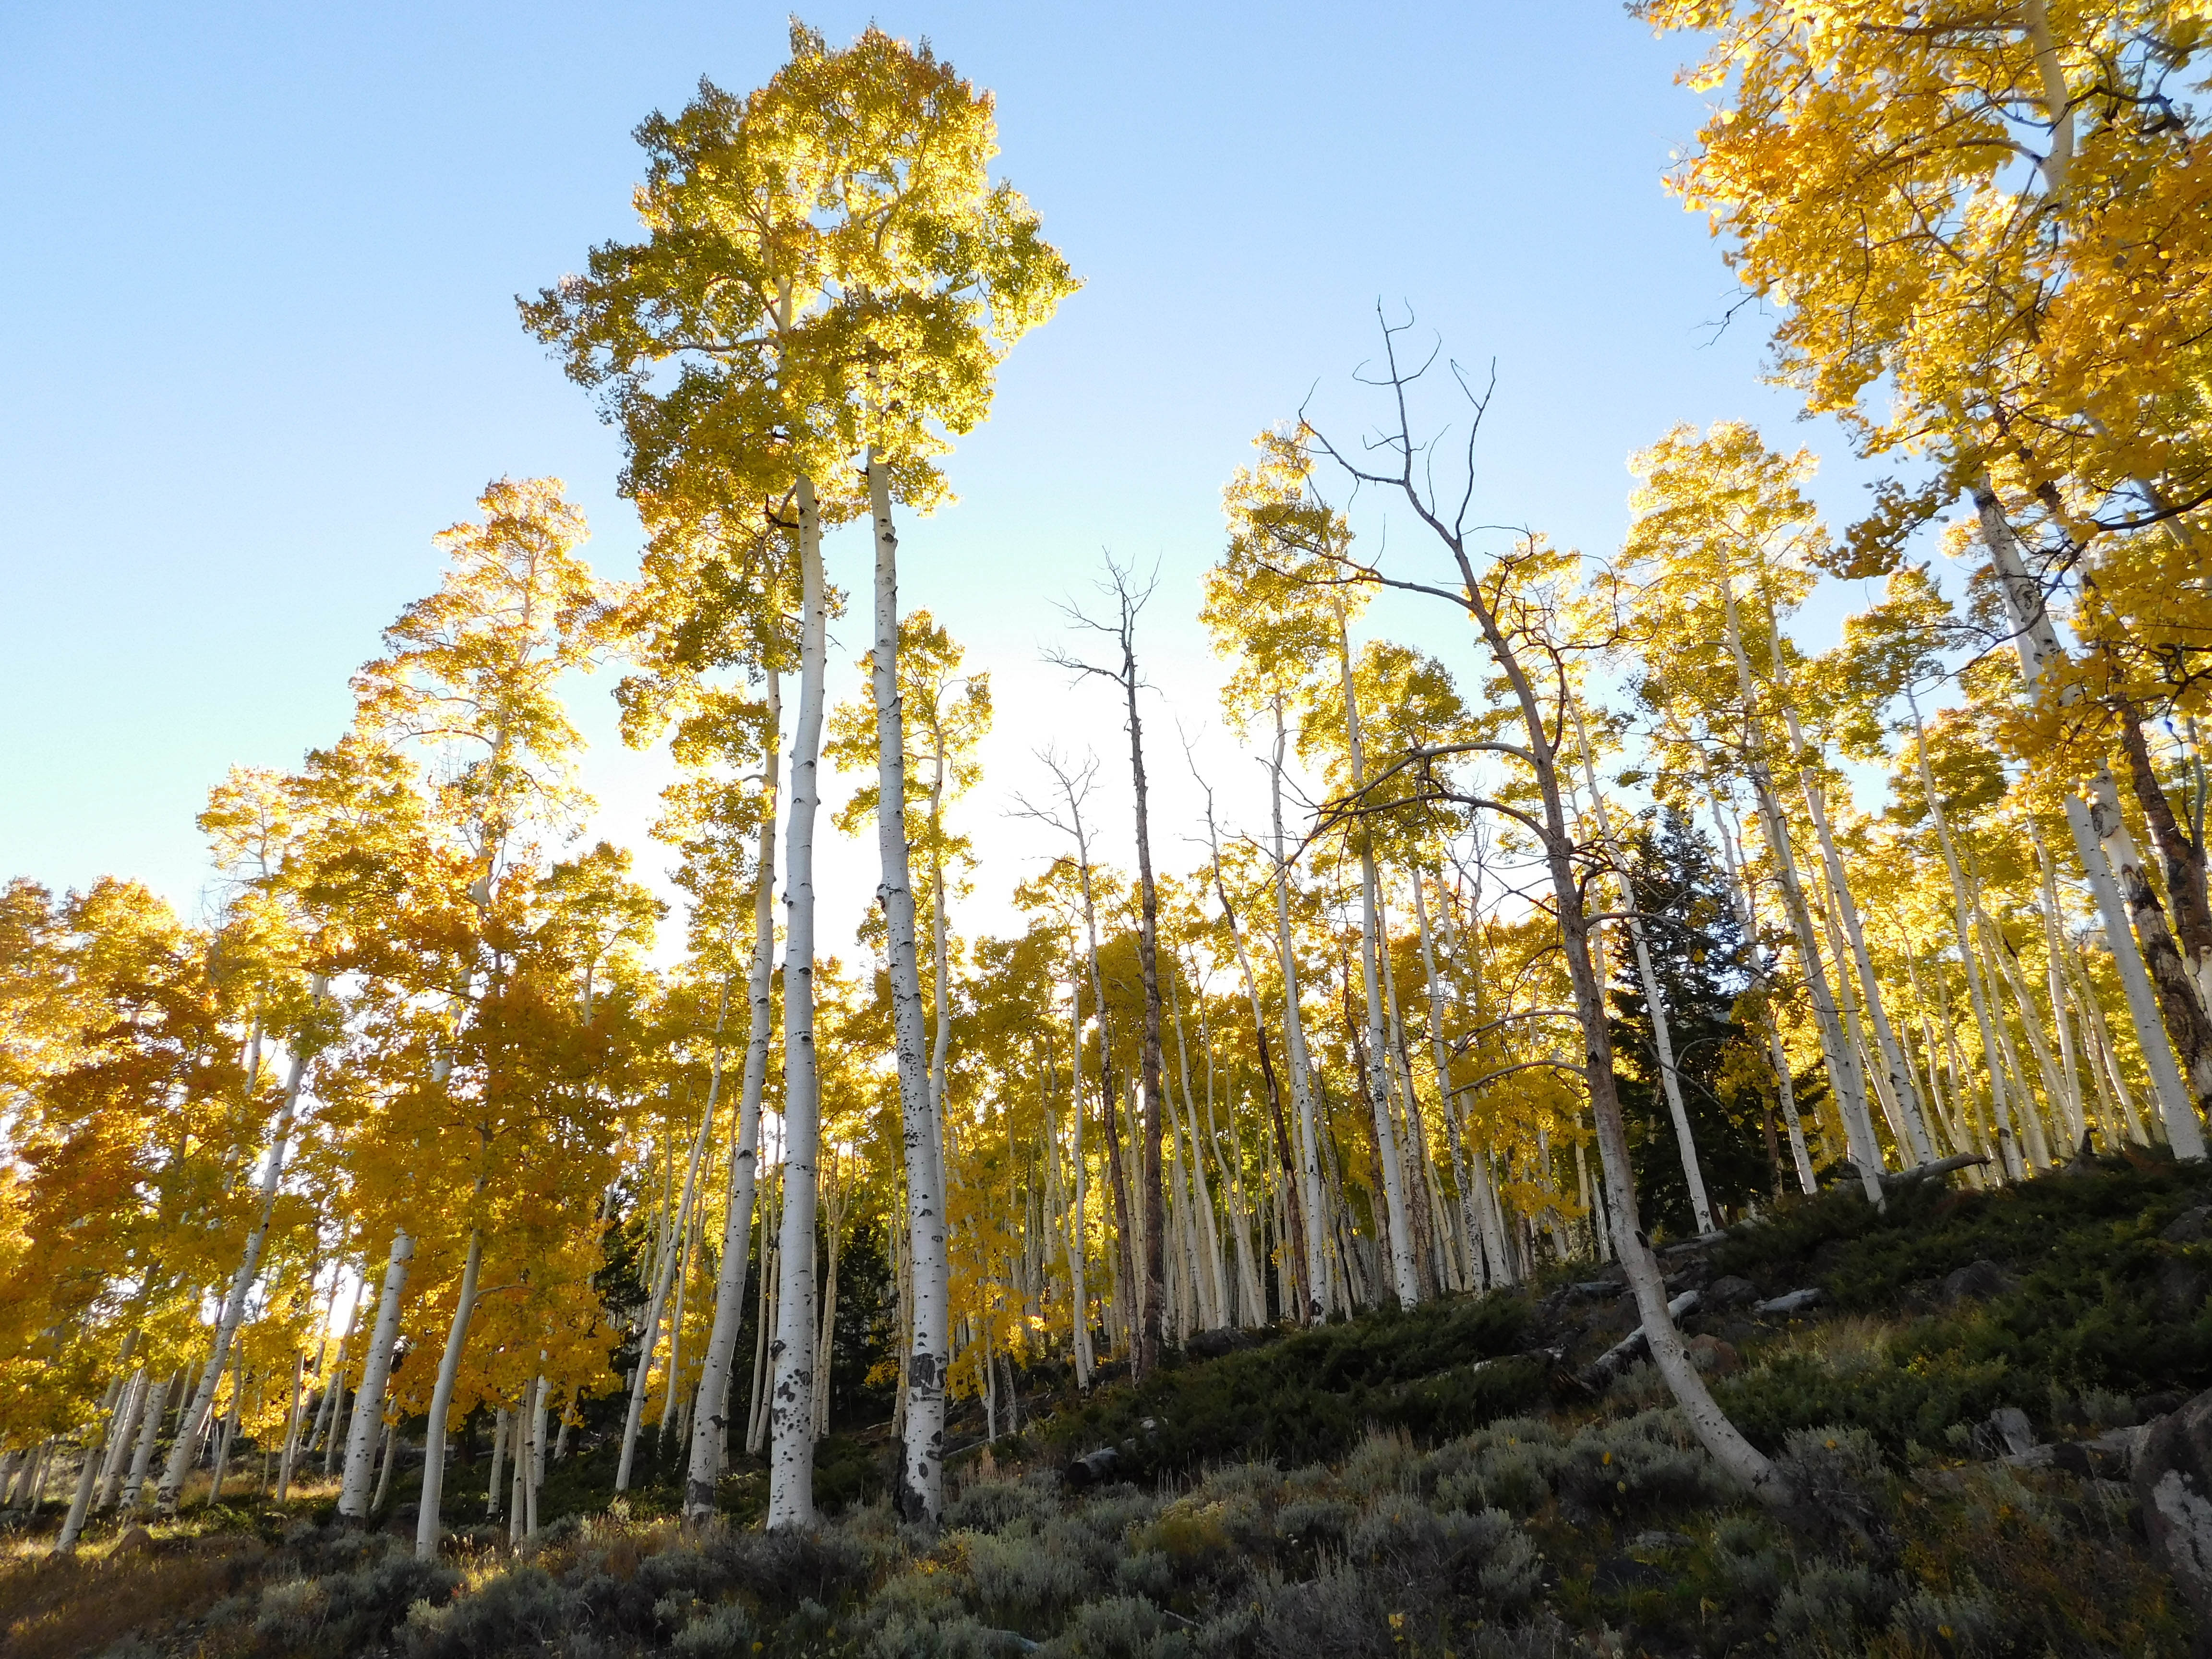 Utah's Pando aspen grove is the most massive living thing known on Earth. It may die soon.